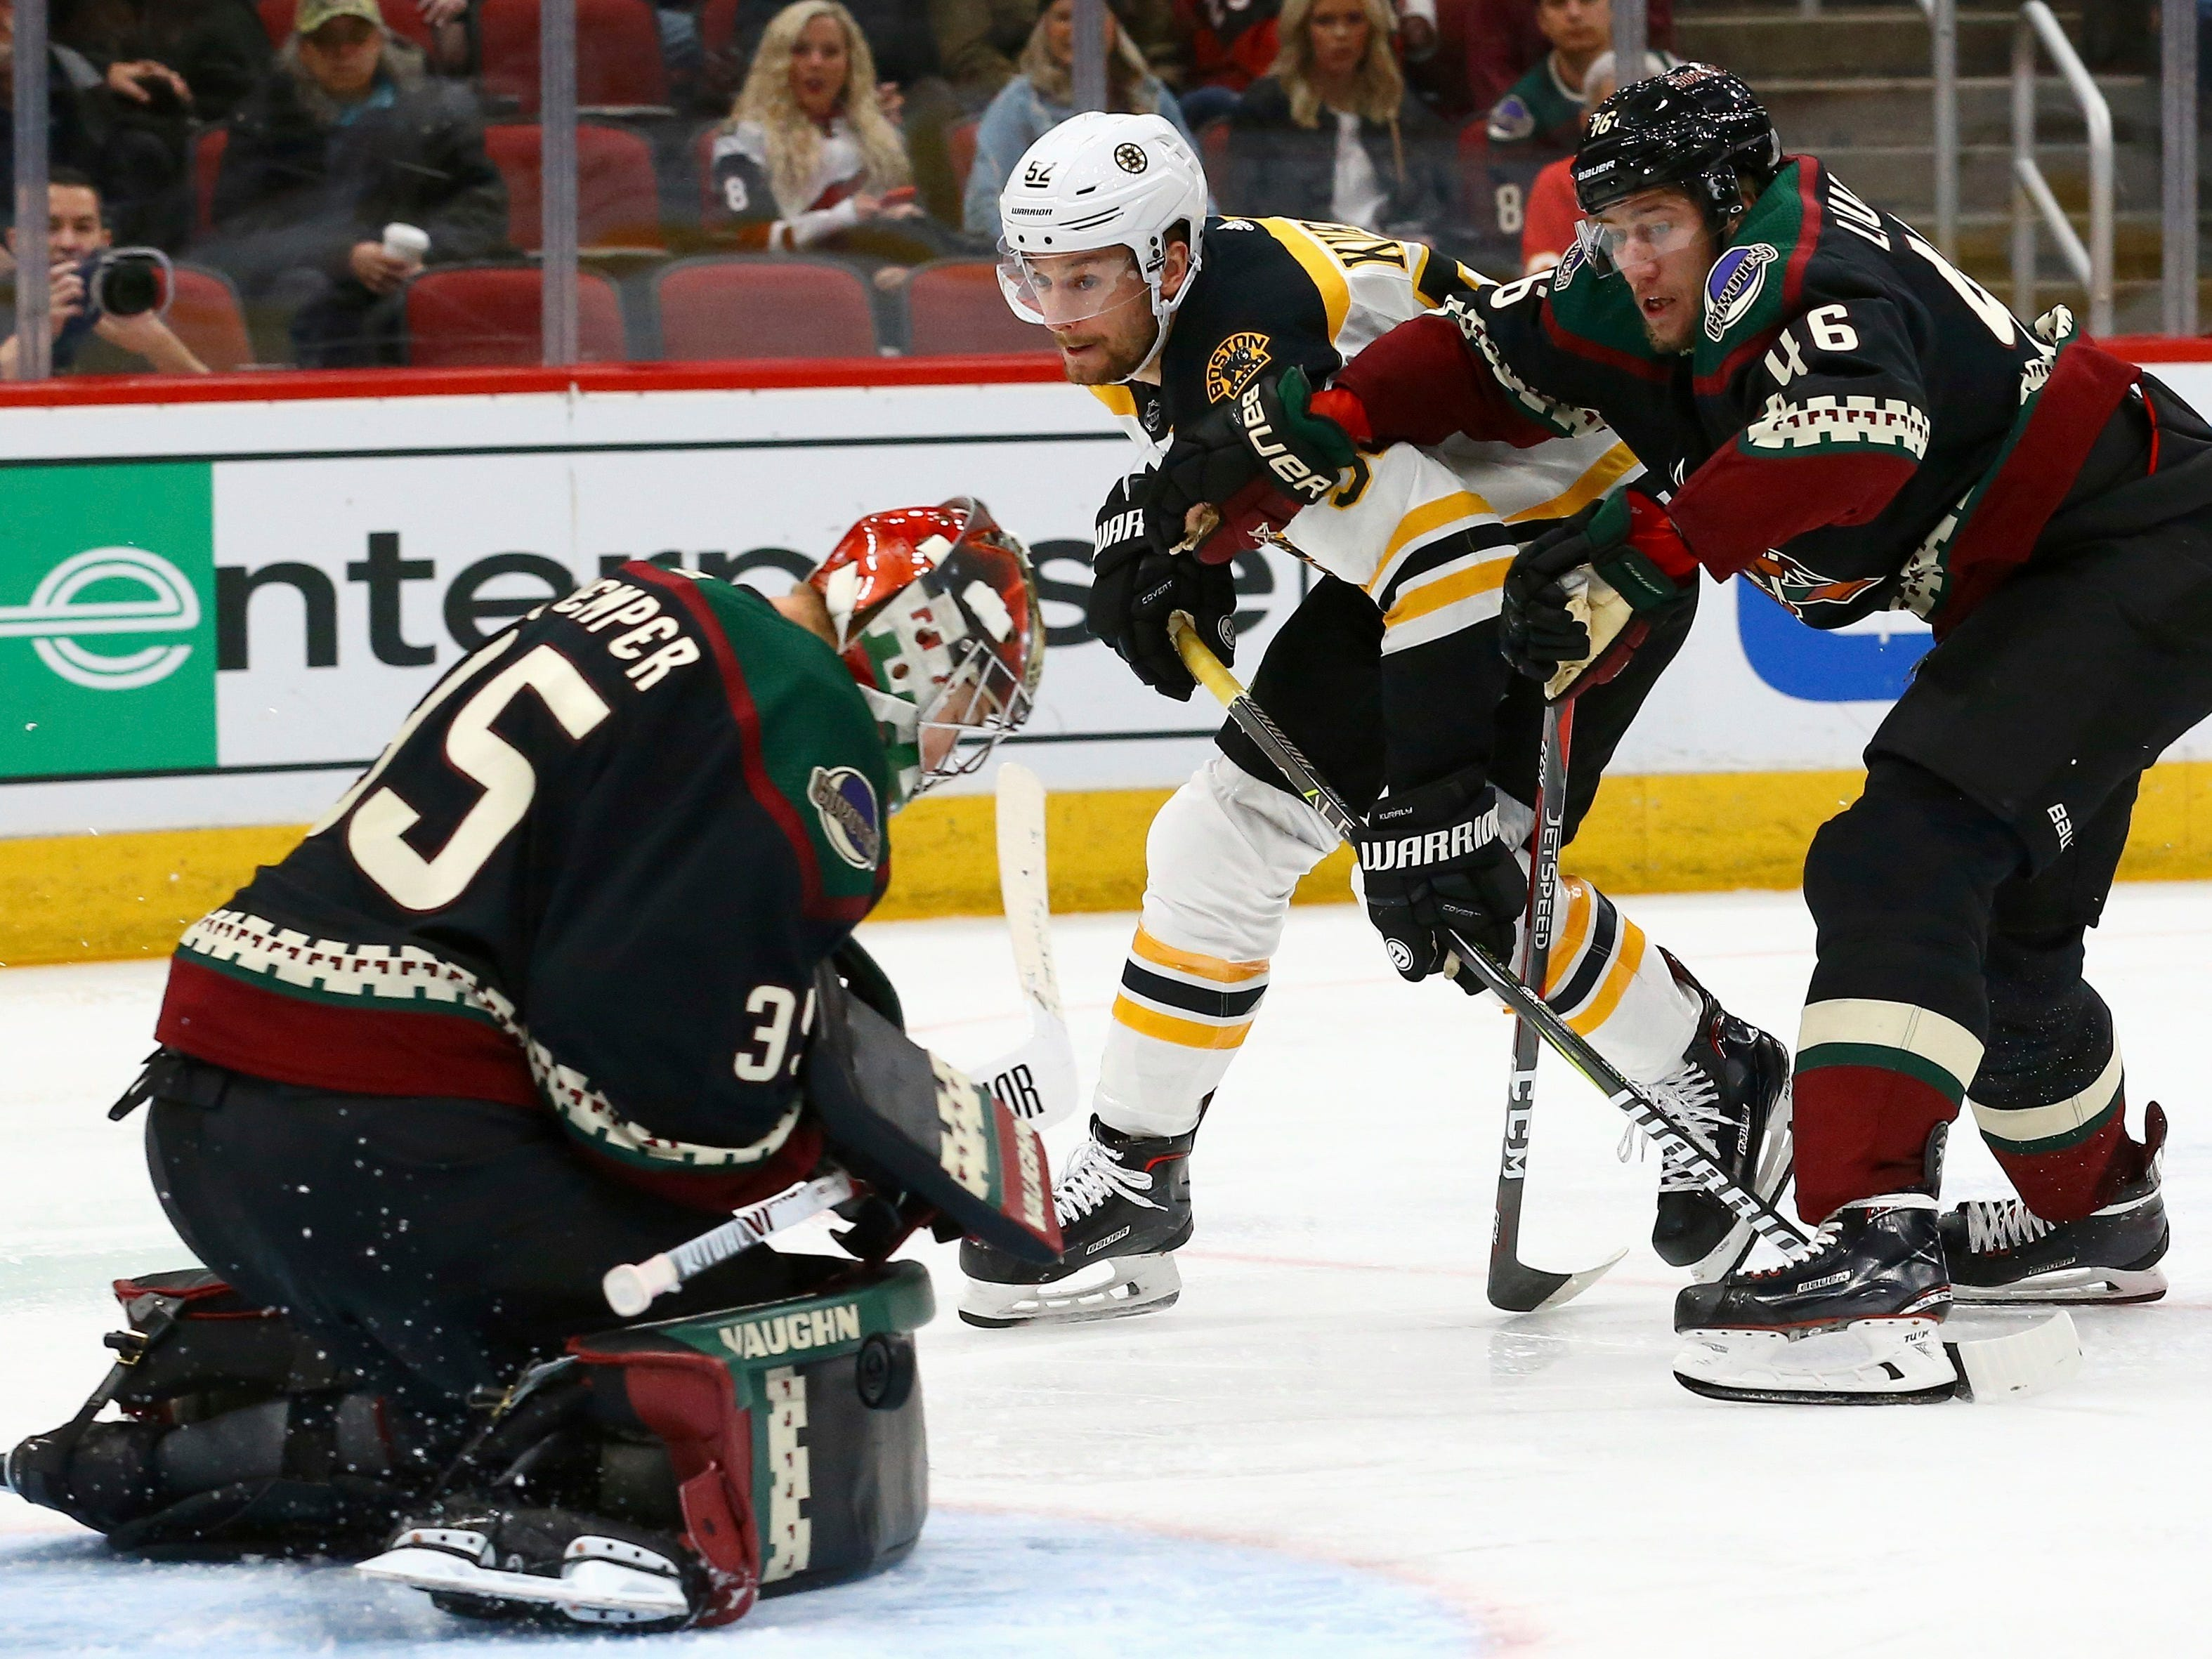 Arizona Coyotes goaltender Darcy Kuemper (35) makes a save on a shot by Boston Bruins center Sean Kuraly (52) as Coyotes defenseman Ilya Lyubushkin (46) watches during the third period of an NHL hockey game Saturday, Nov. 17, 2018, in Glendale, Ariz. The Bruins won 2-1. (AP Photo/Ross D. Franklin)